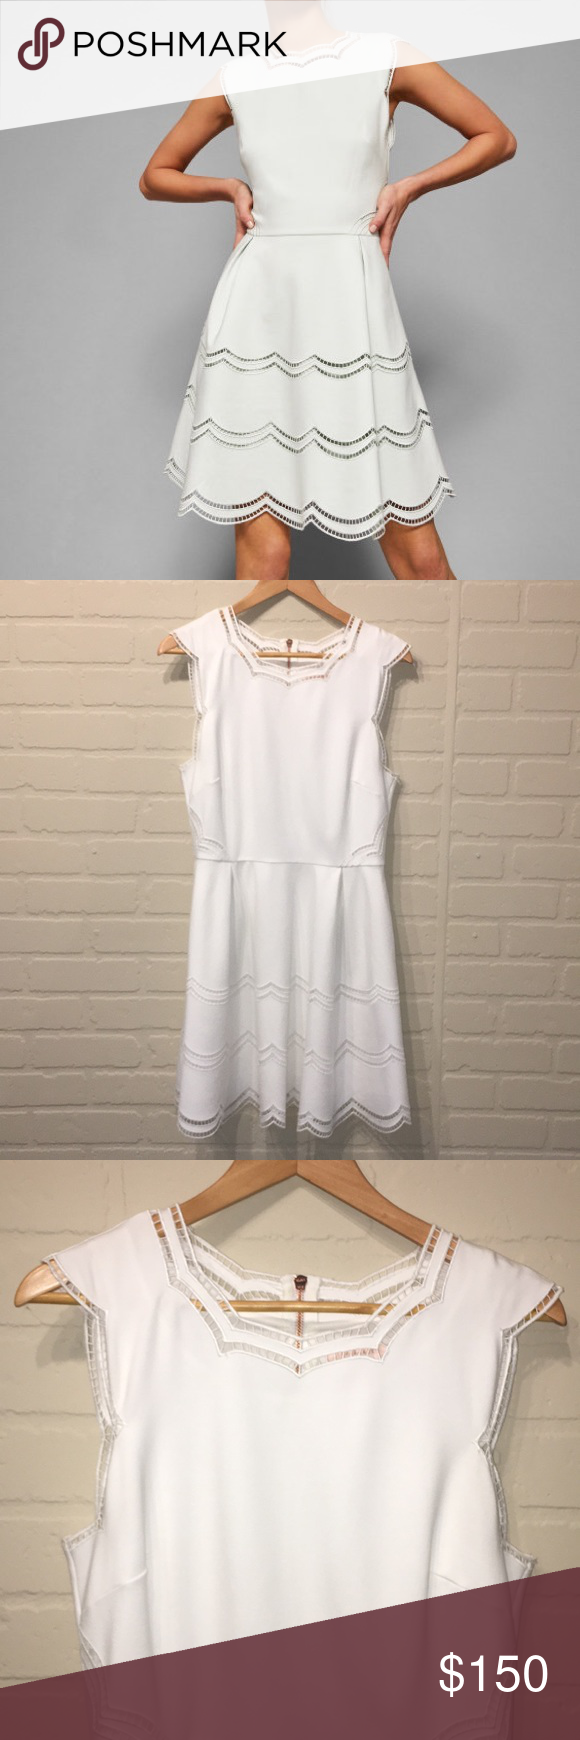 56f093a929662 Ted Baker scalloped White cammey skater dress Used once   has been dry  cleaned. Size